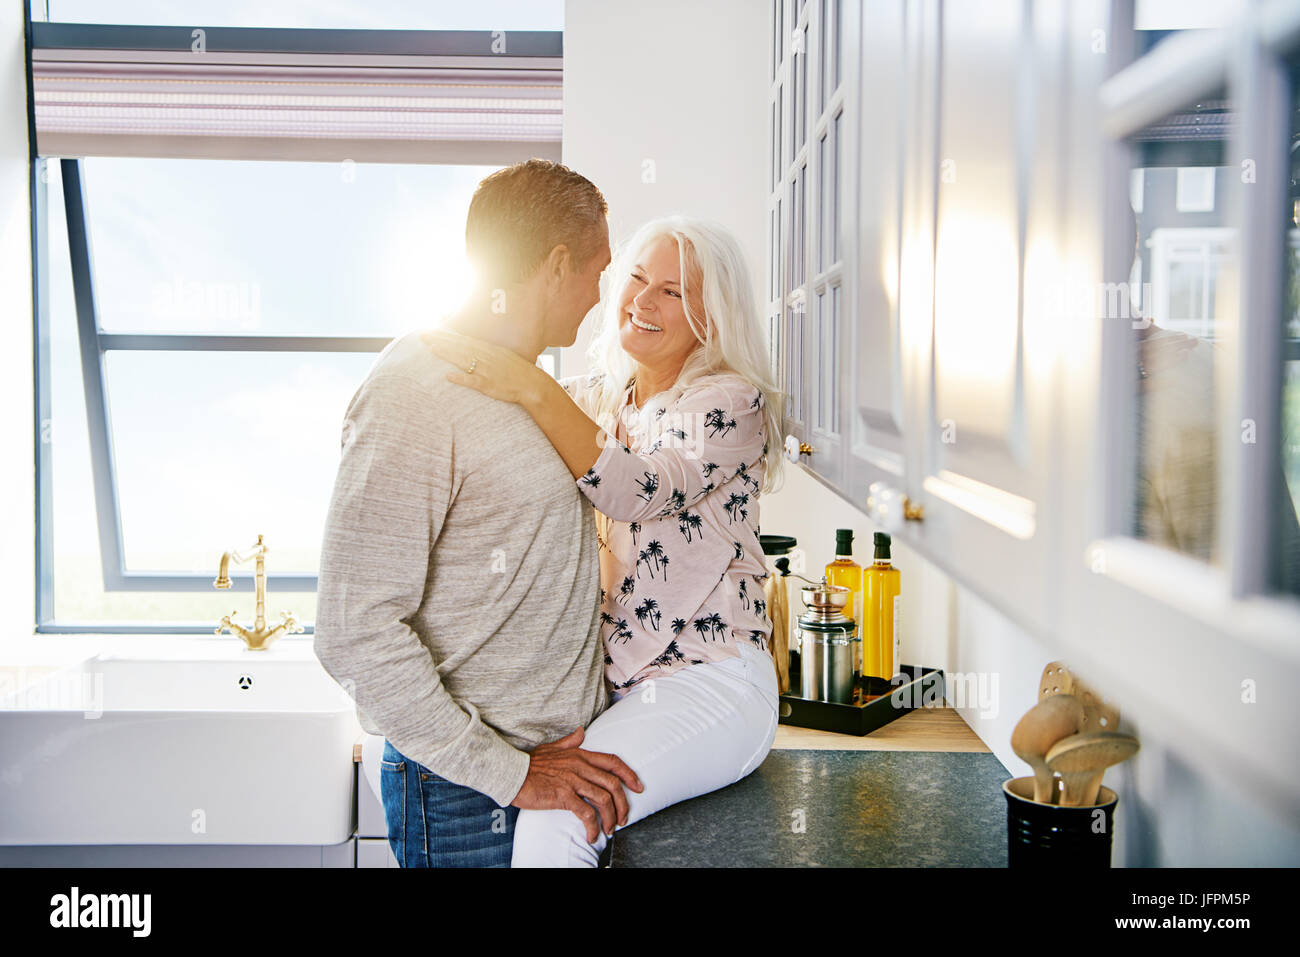 Smiling senior woman sharing a romantic moment with her husband ...